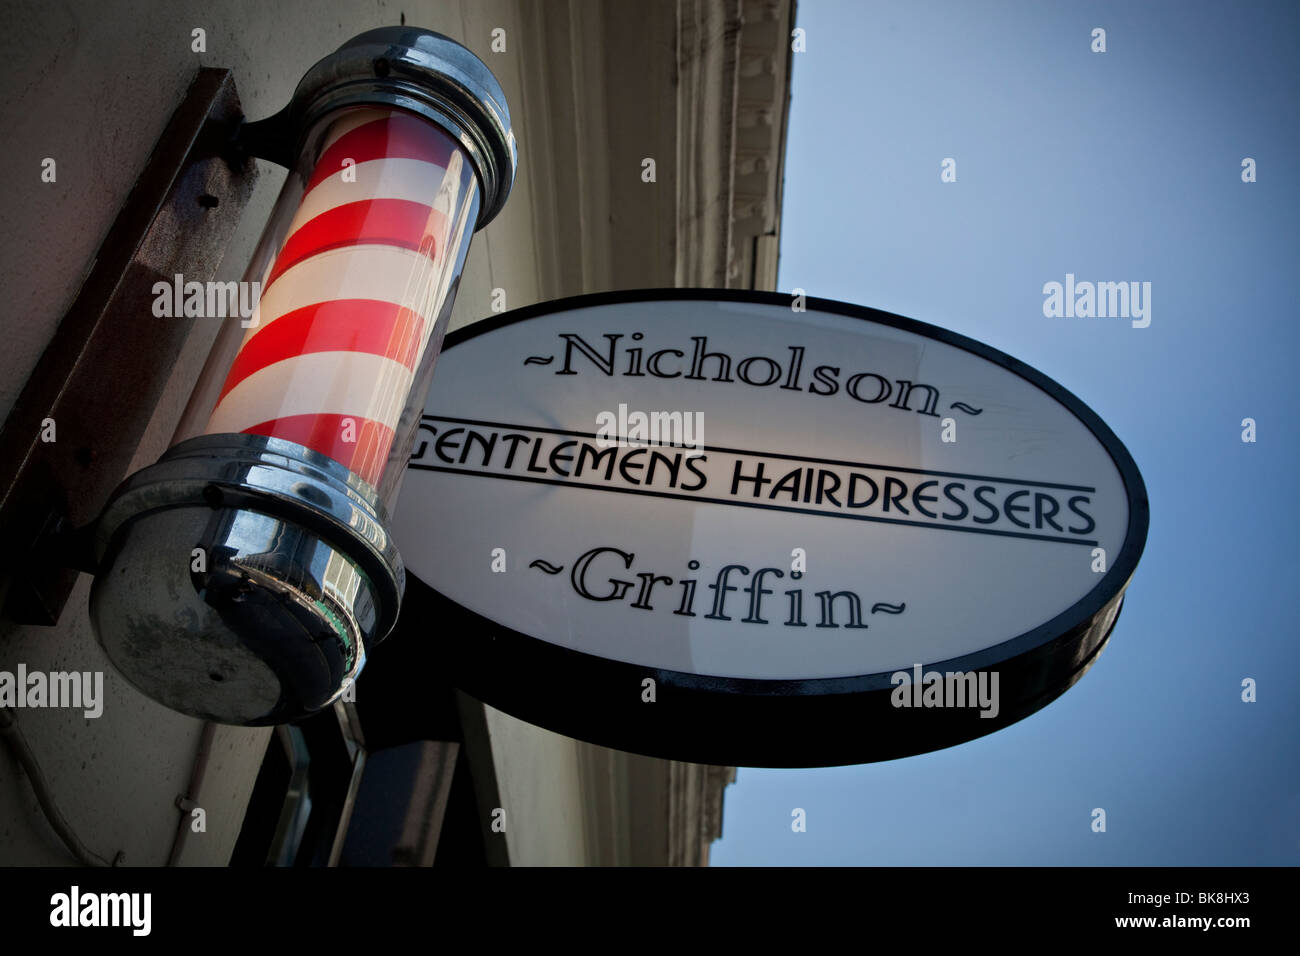 Barber Pole außerhalb Gentleman Friseur in London, UK Stockbild